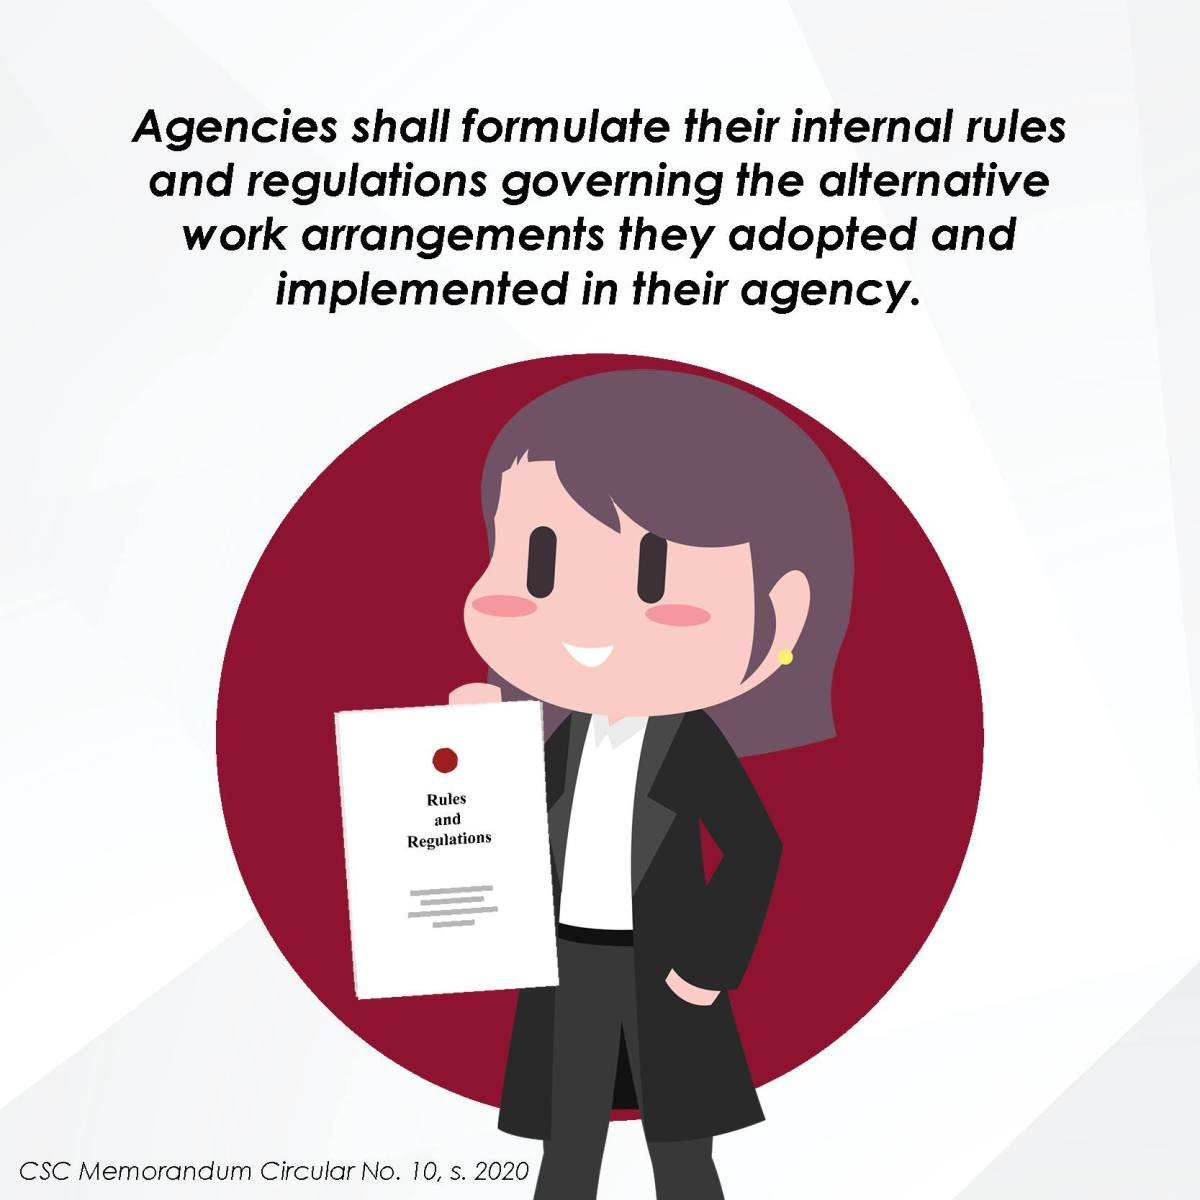 Agencies shall formulate their internal rules and regulations